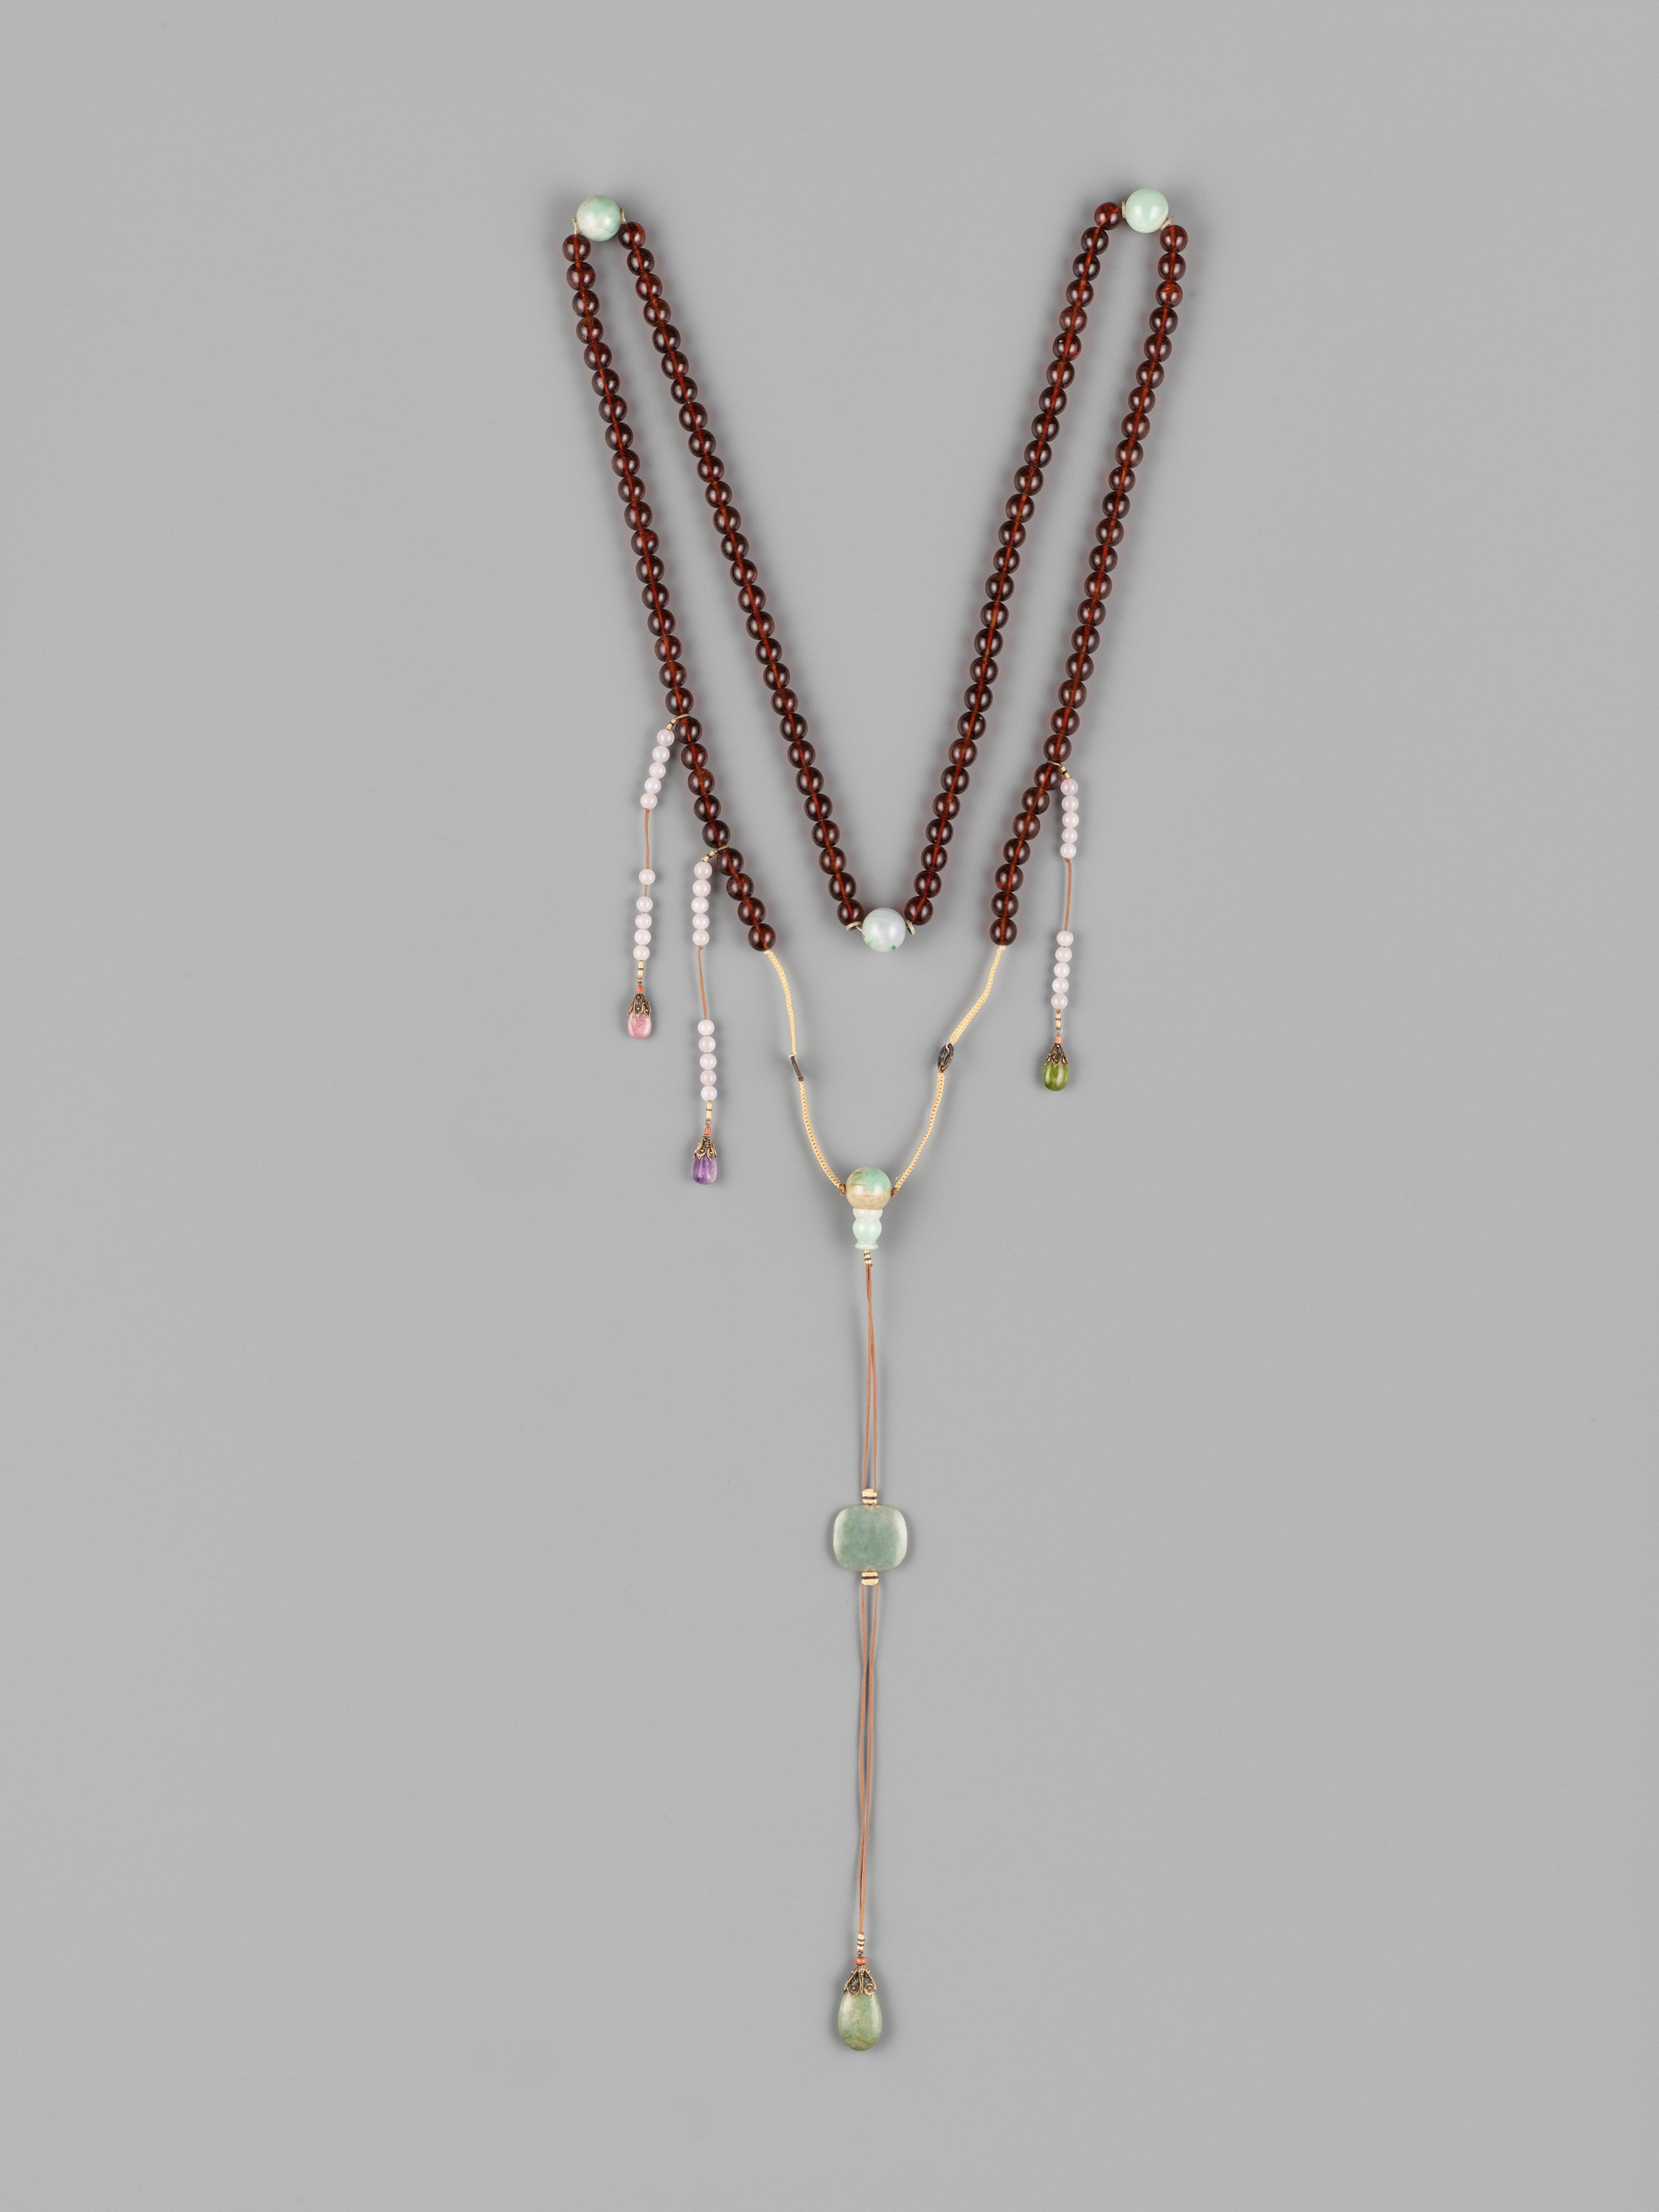 AN AMBER AND JADEITE COURT NECKLACE (CHAO ZHU), QING DYNASTY - Image 5 of 7